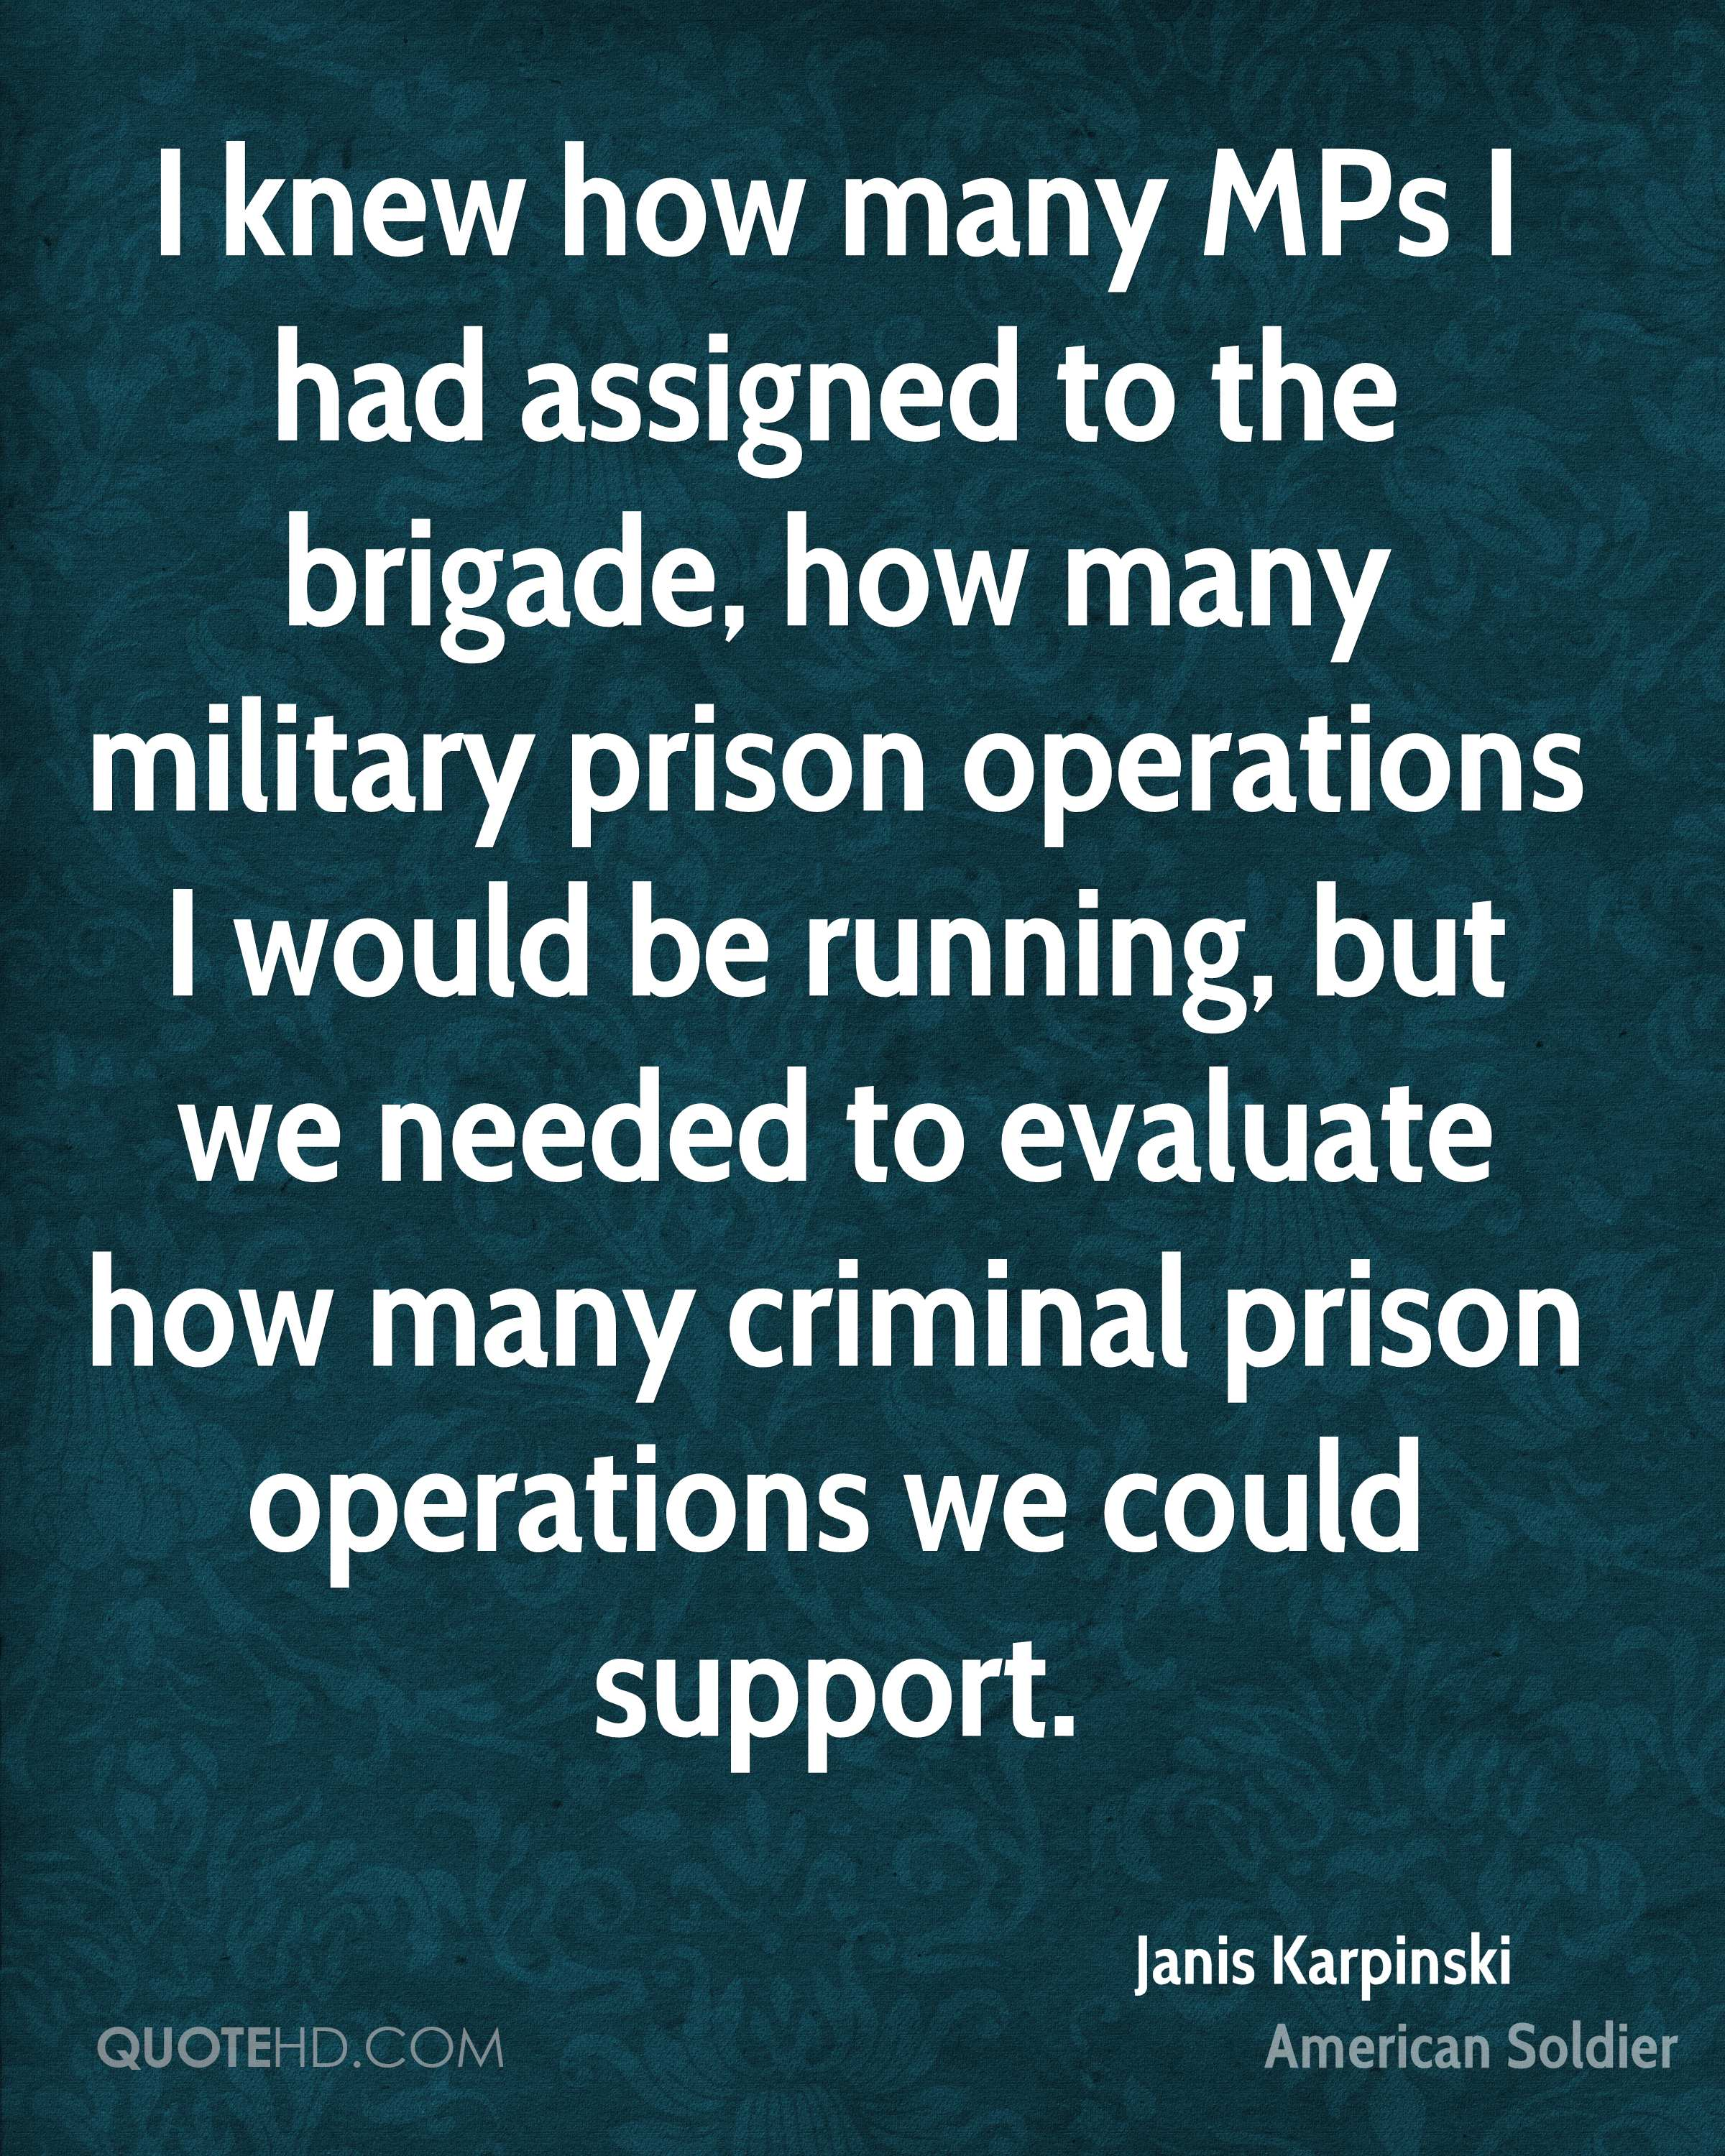 I knew how many MPs I had assigned to the brigade, how many military prison operations I would be running, but we needed to evaluate how many criminal prison operations we could support.